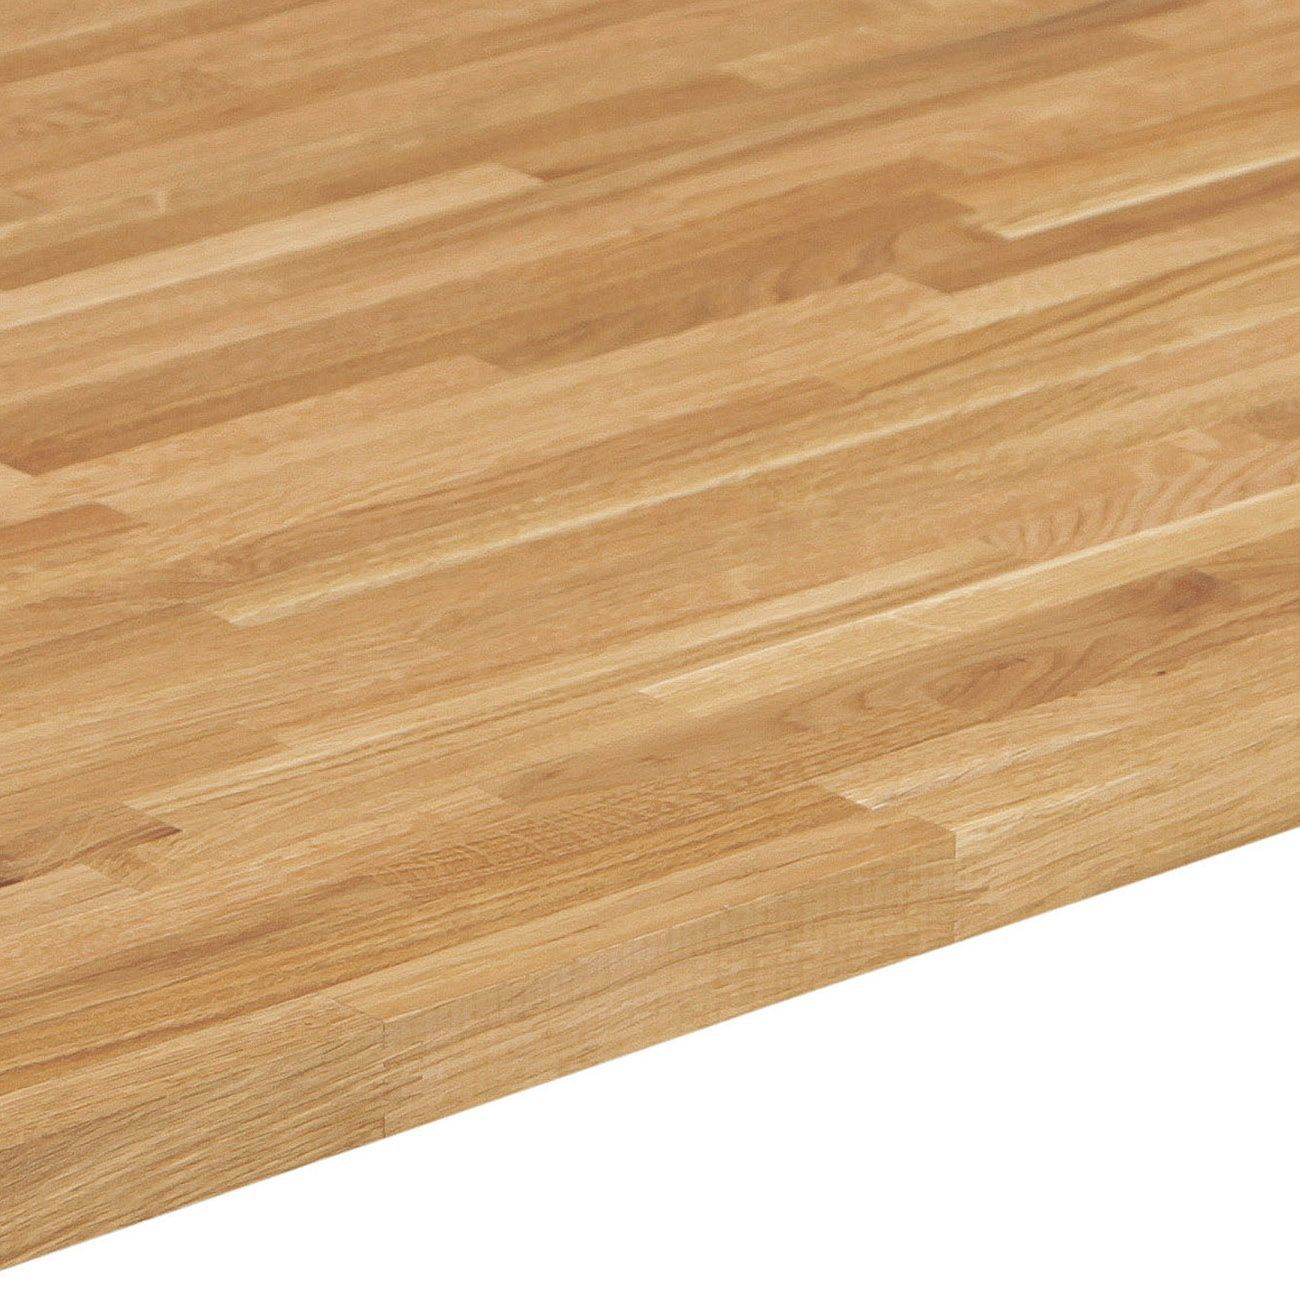 Bq Kitchen Flooring 26mm Bq Solid Oak Square Edge Kitchen Worktop L3000mm D600mm